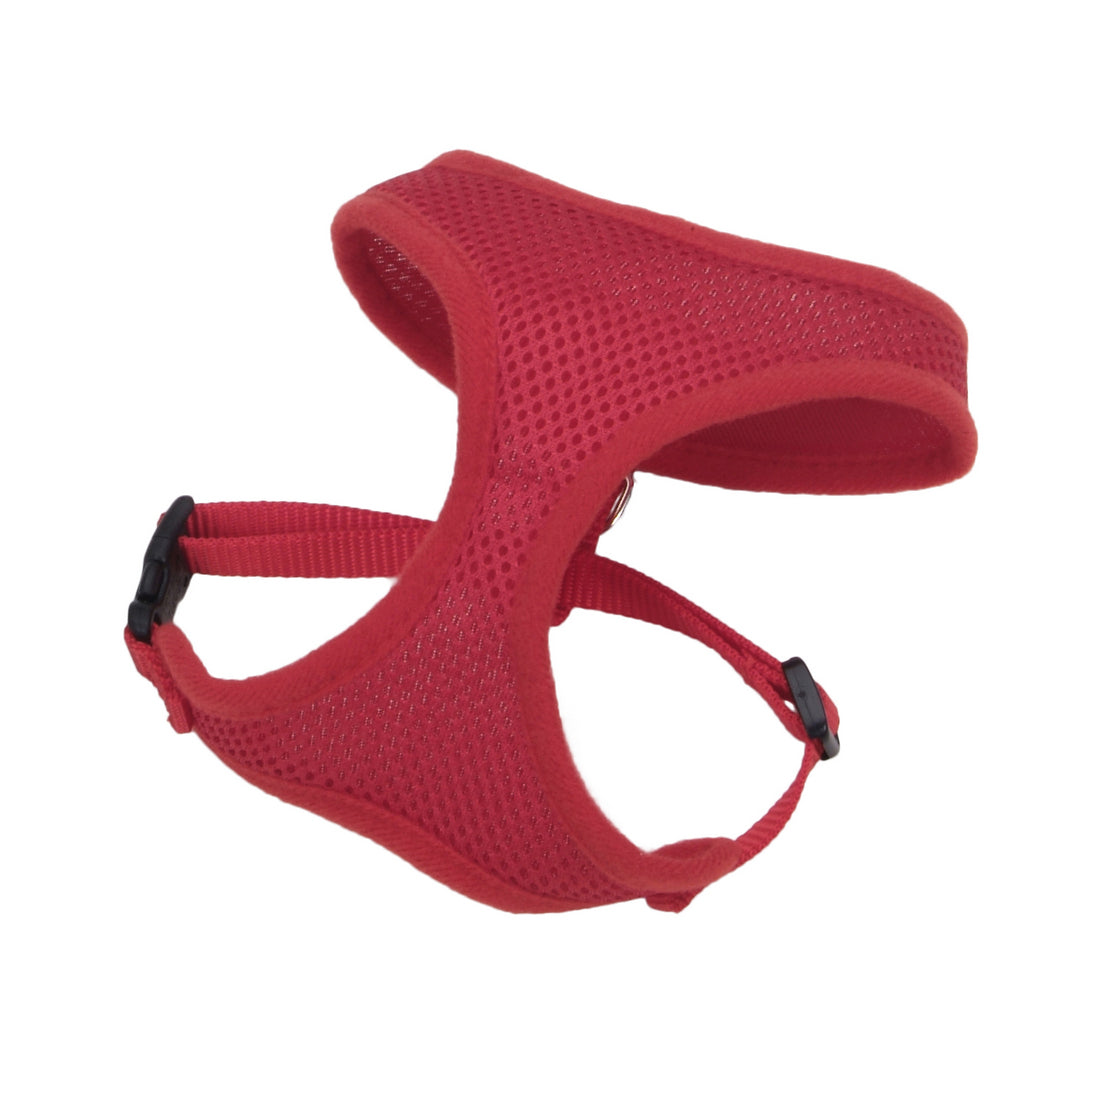 Coastal Comfort Soft Adjustable Harness XX-Small Red